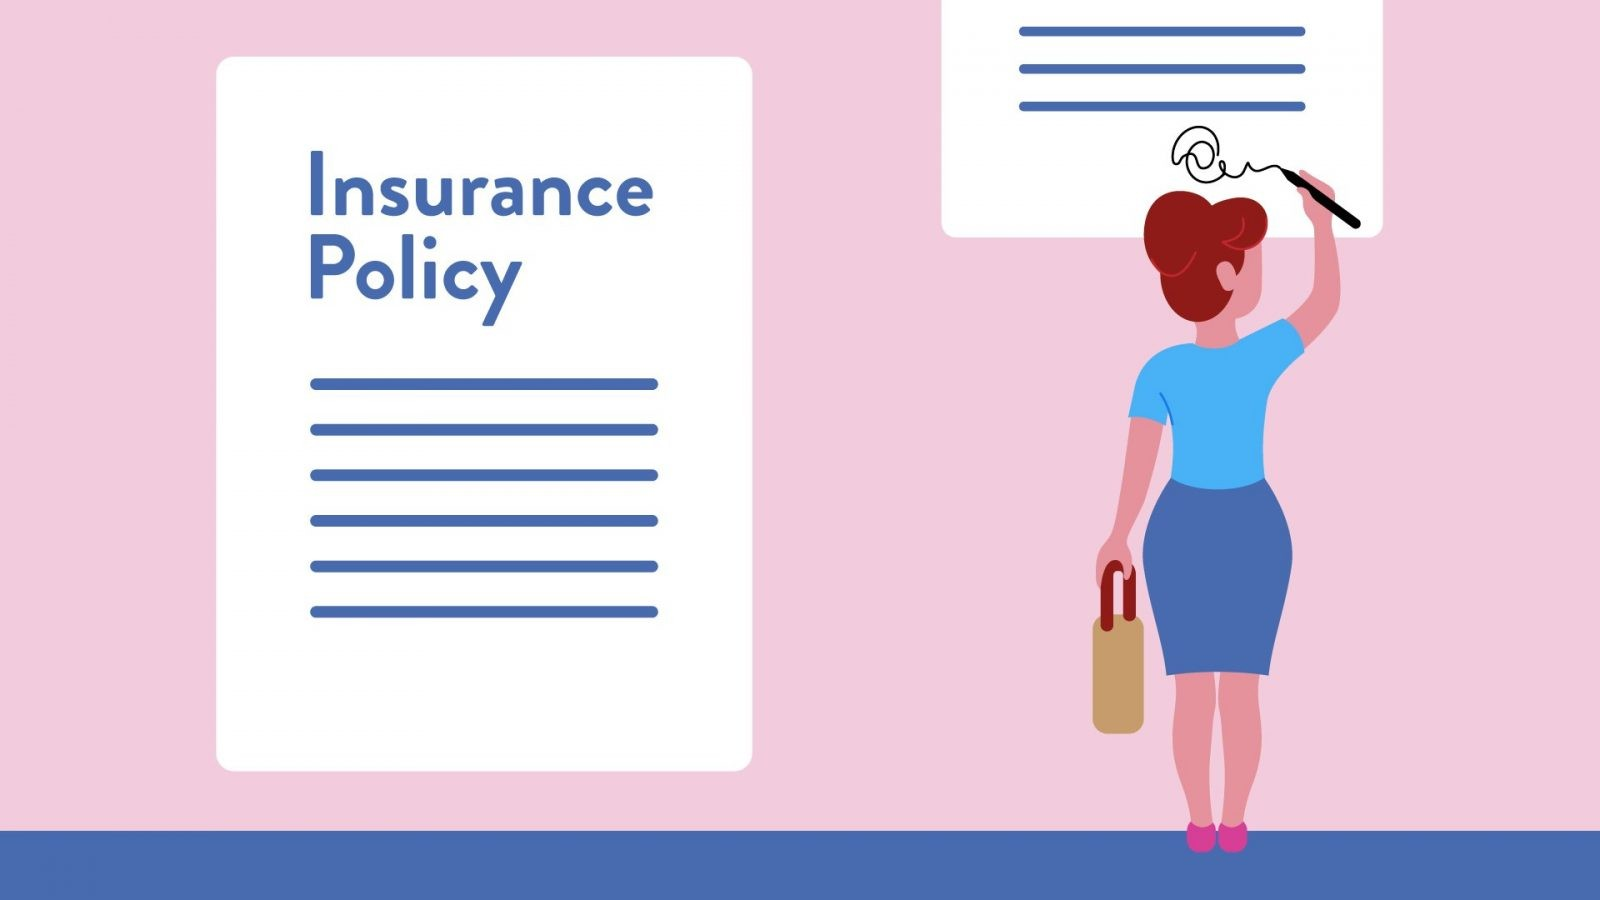 Insurance Policy schedule